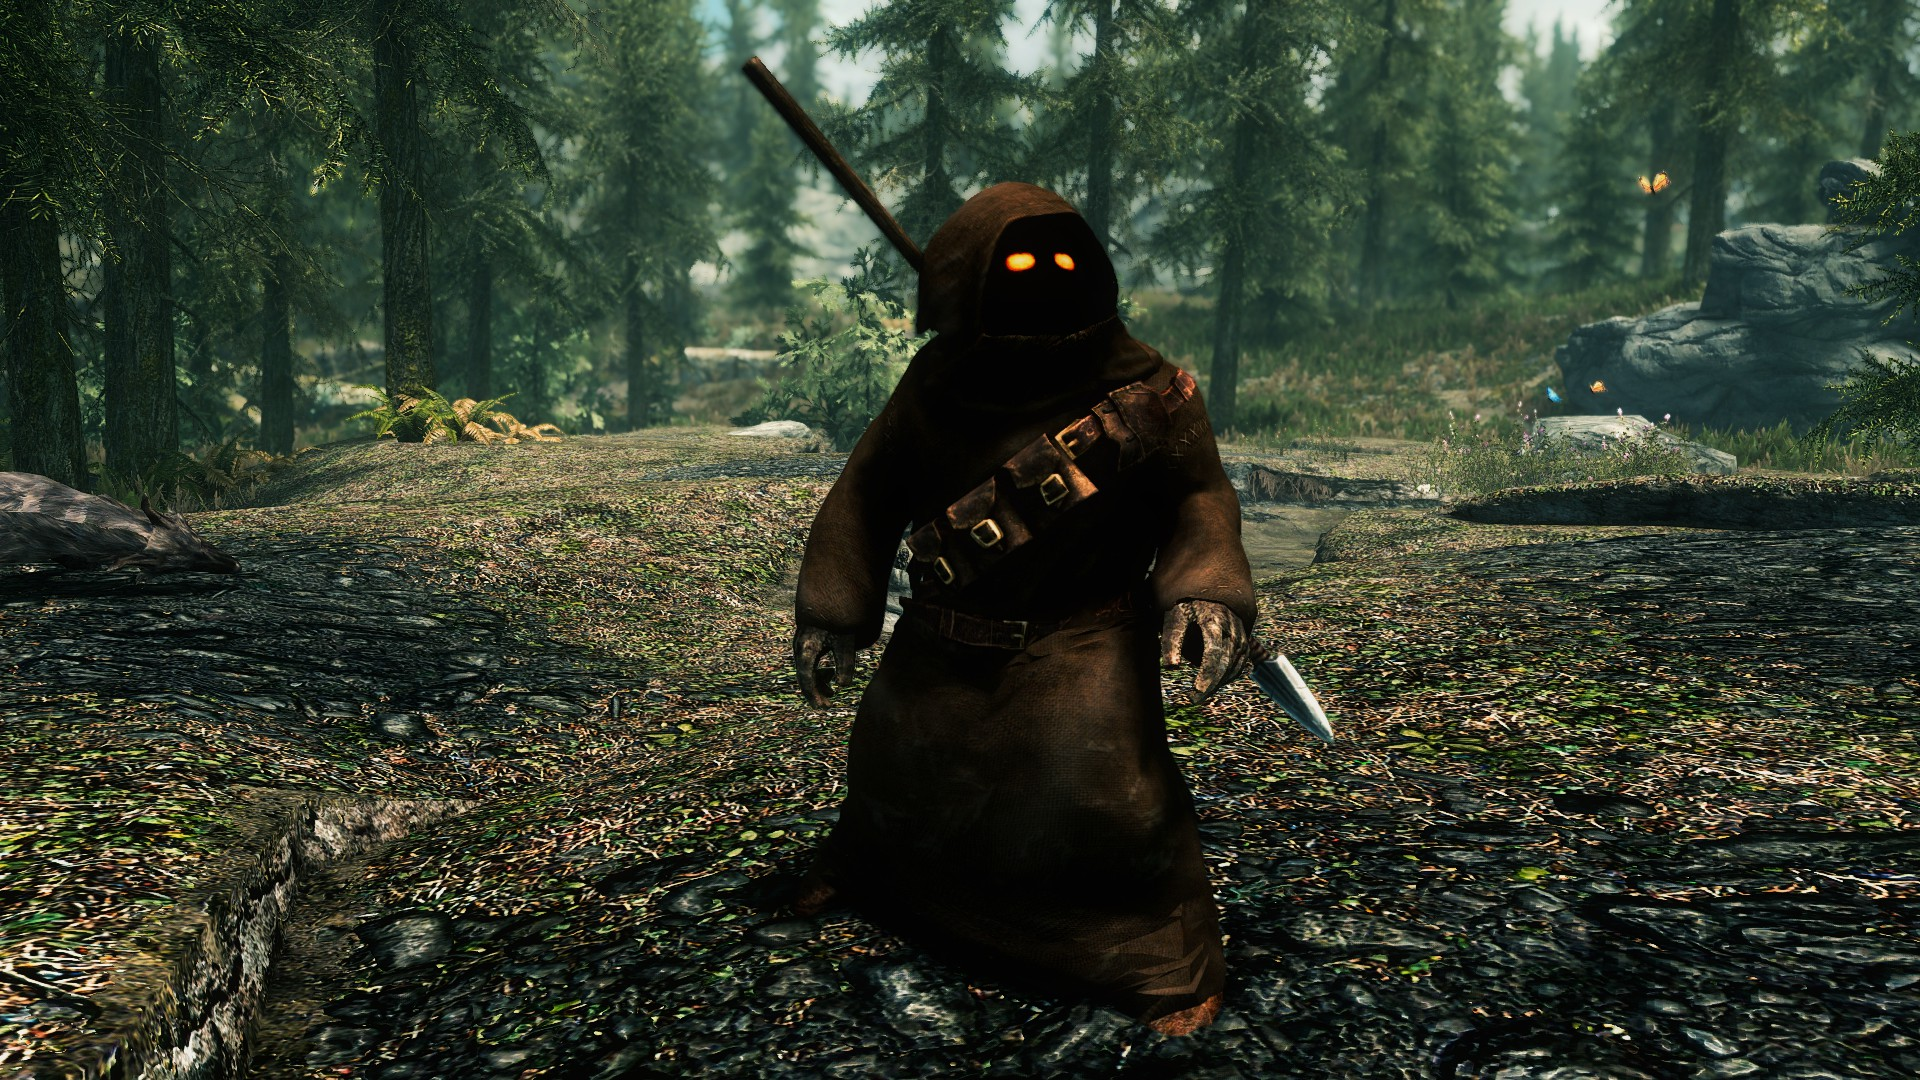 Get in the mood for Star Wars with this Jawa follower mod for Skyrim